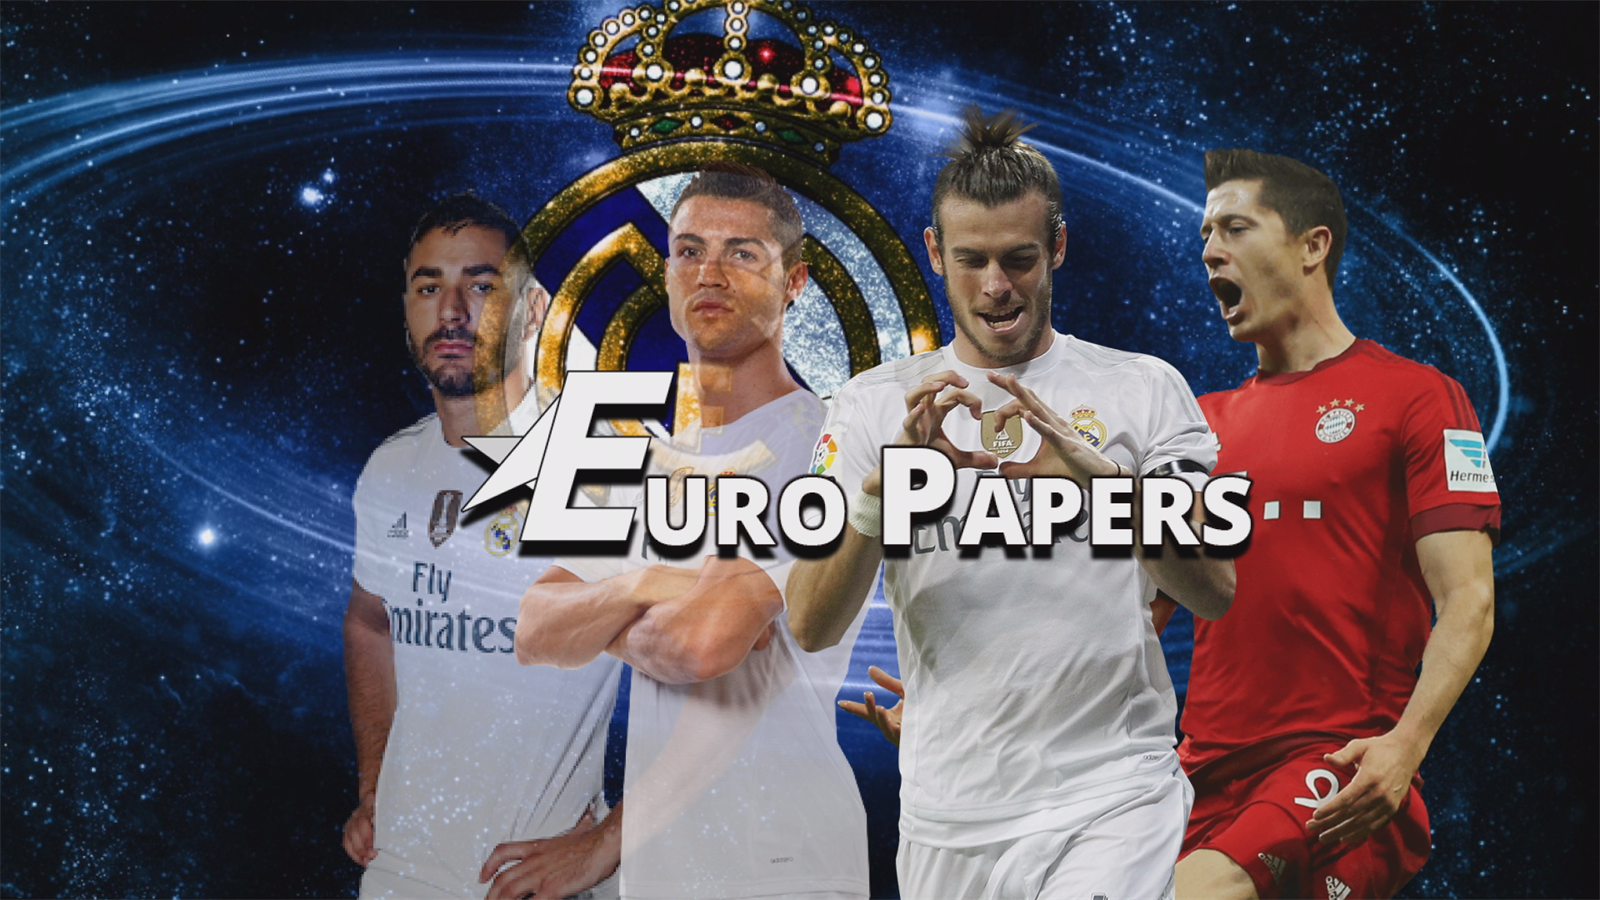 Bye-bye Benzema & Real replace Ronaldo - Euro Papers